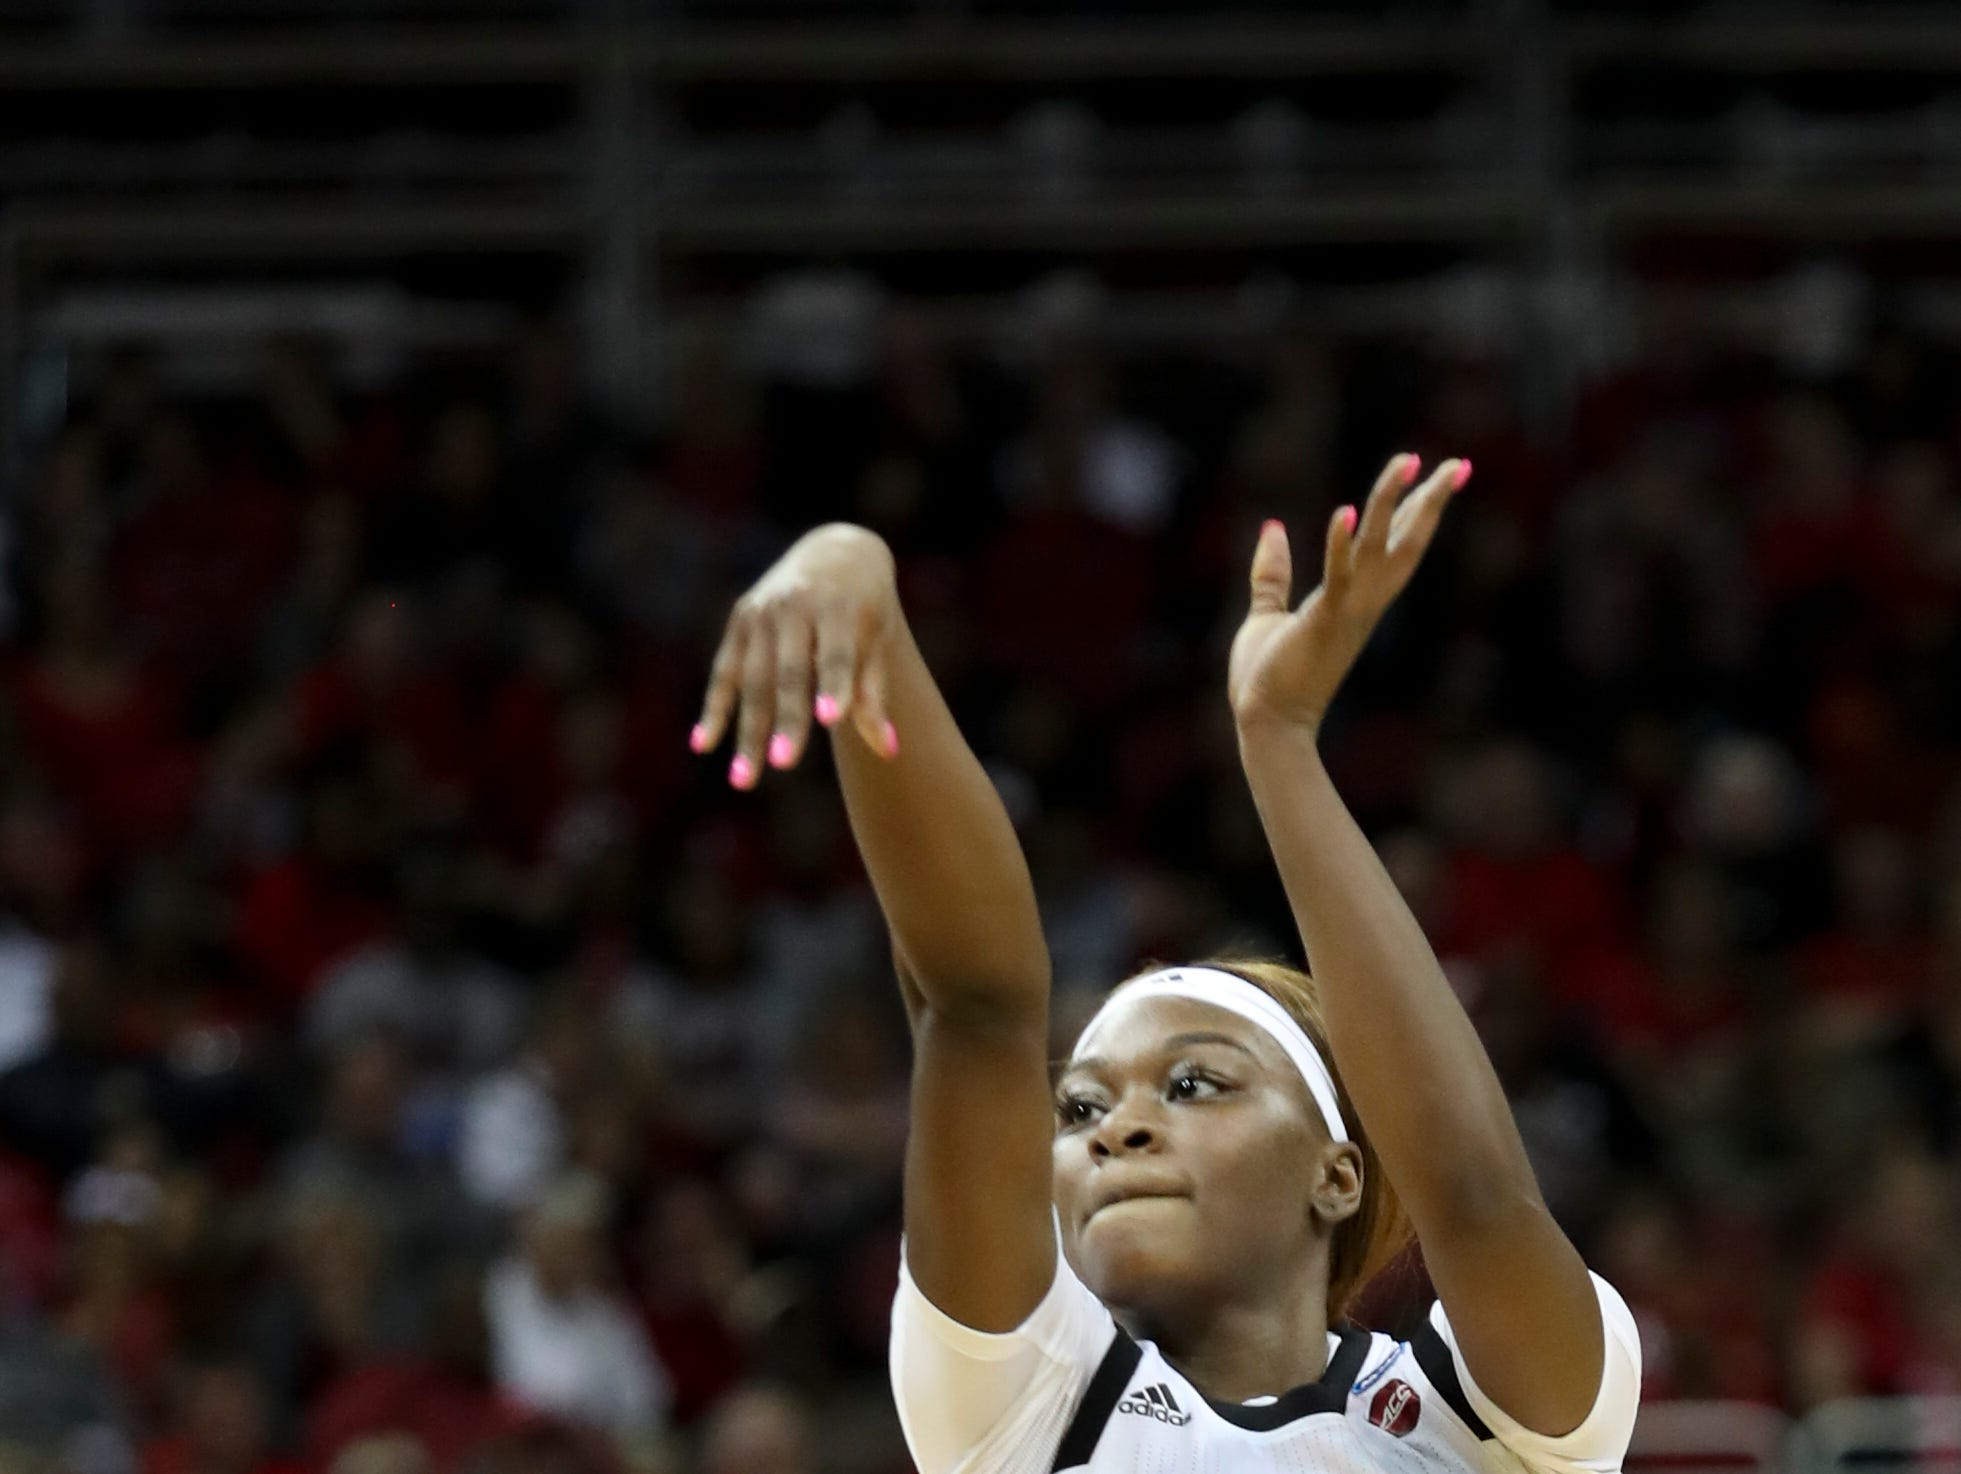 Louisville's Dana Evans knocks down a three against Michigan at the KFC Yum Center on March 24.